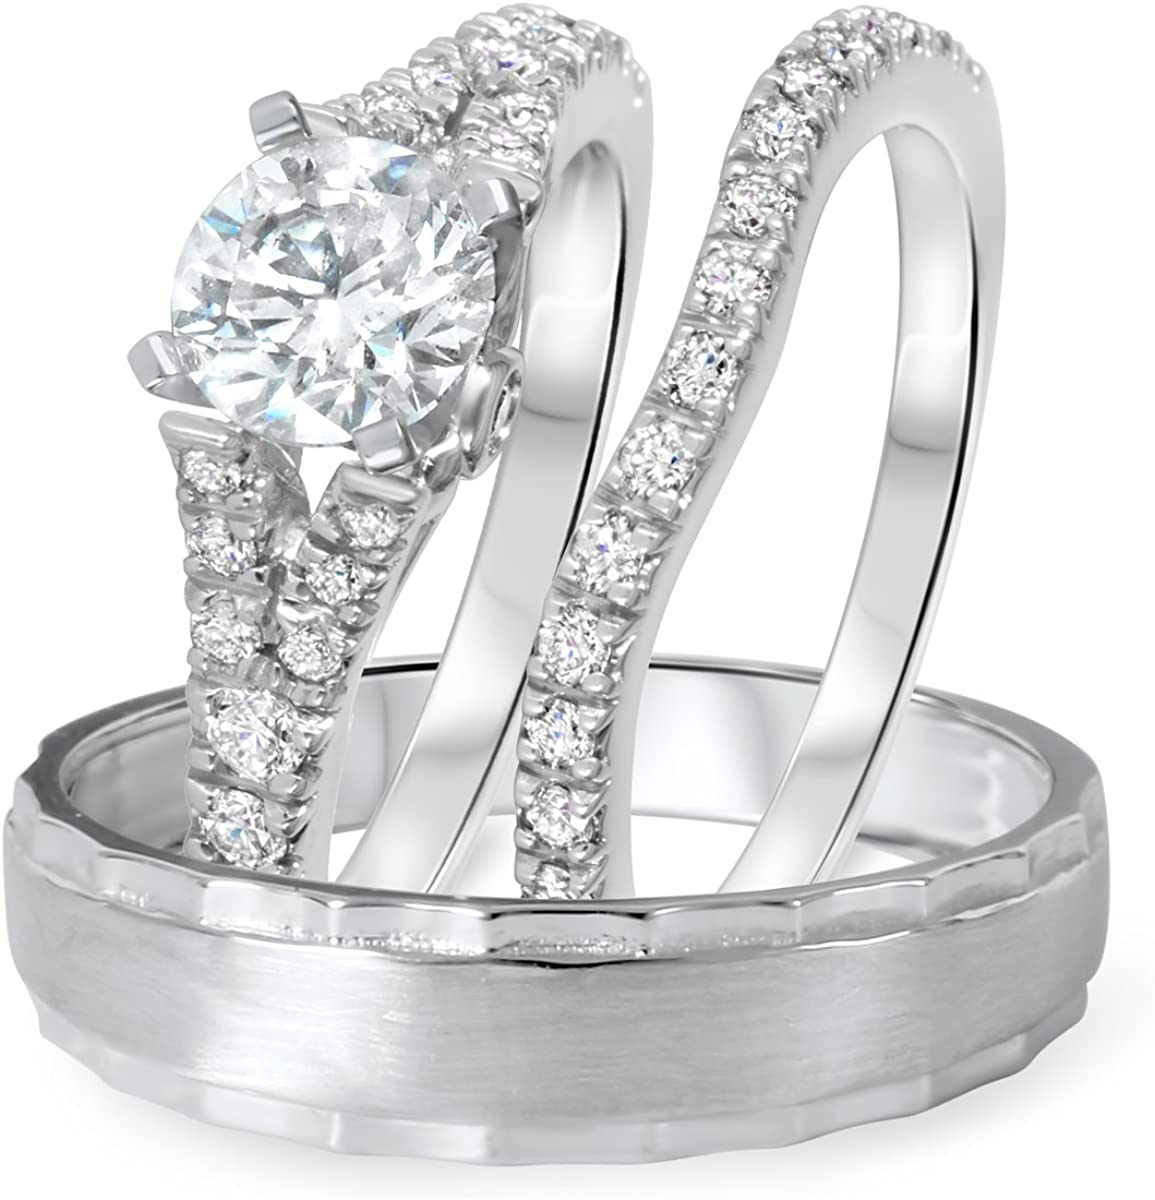 Triostar 14K Long Beach Mall White Gold Finish 1 His Round Ct Diamond 2 Cut Beauty products